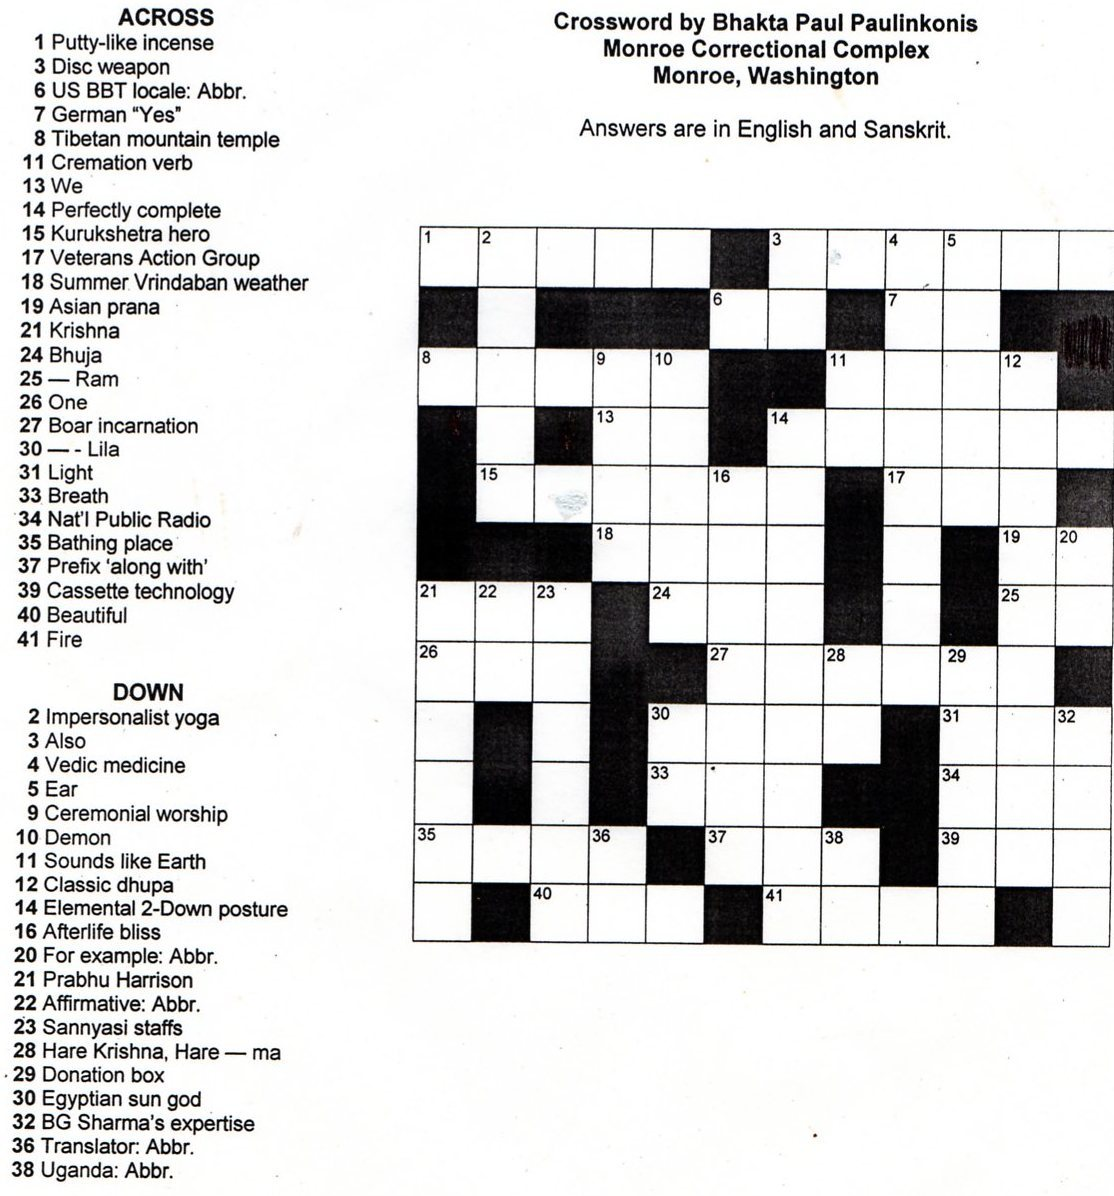 Grade school papers crossword clue